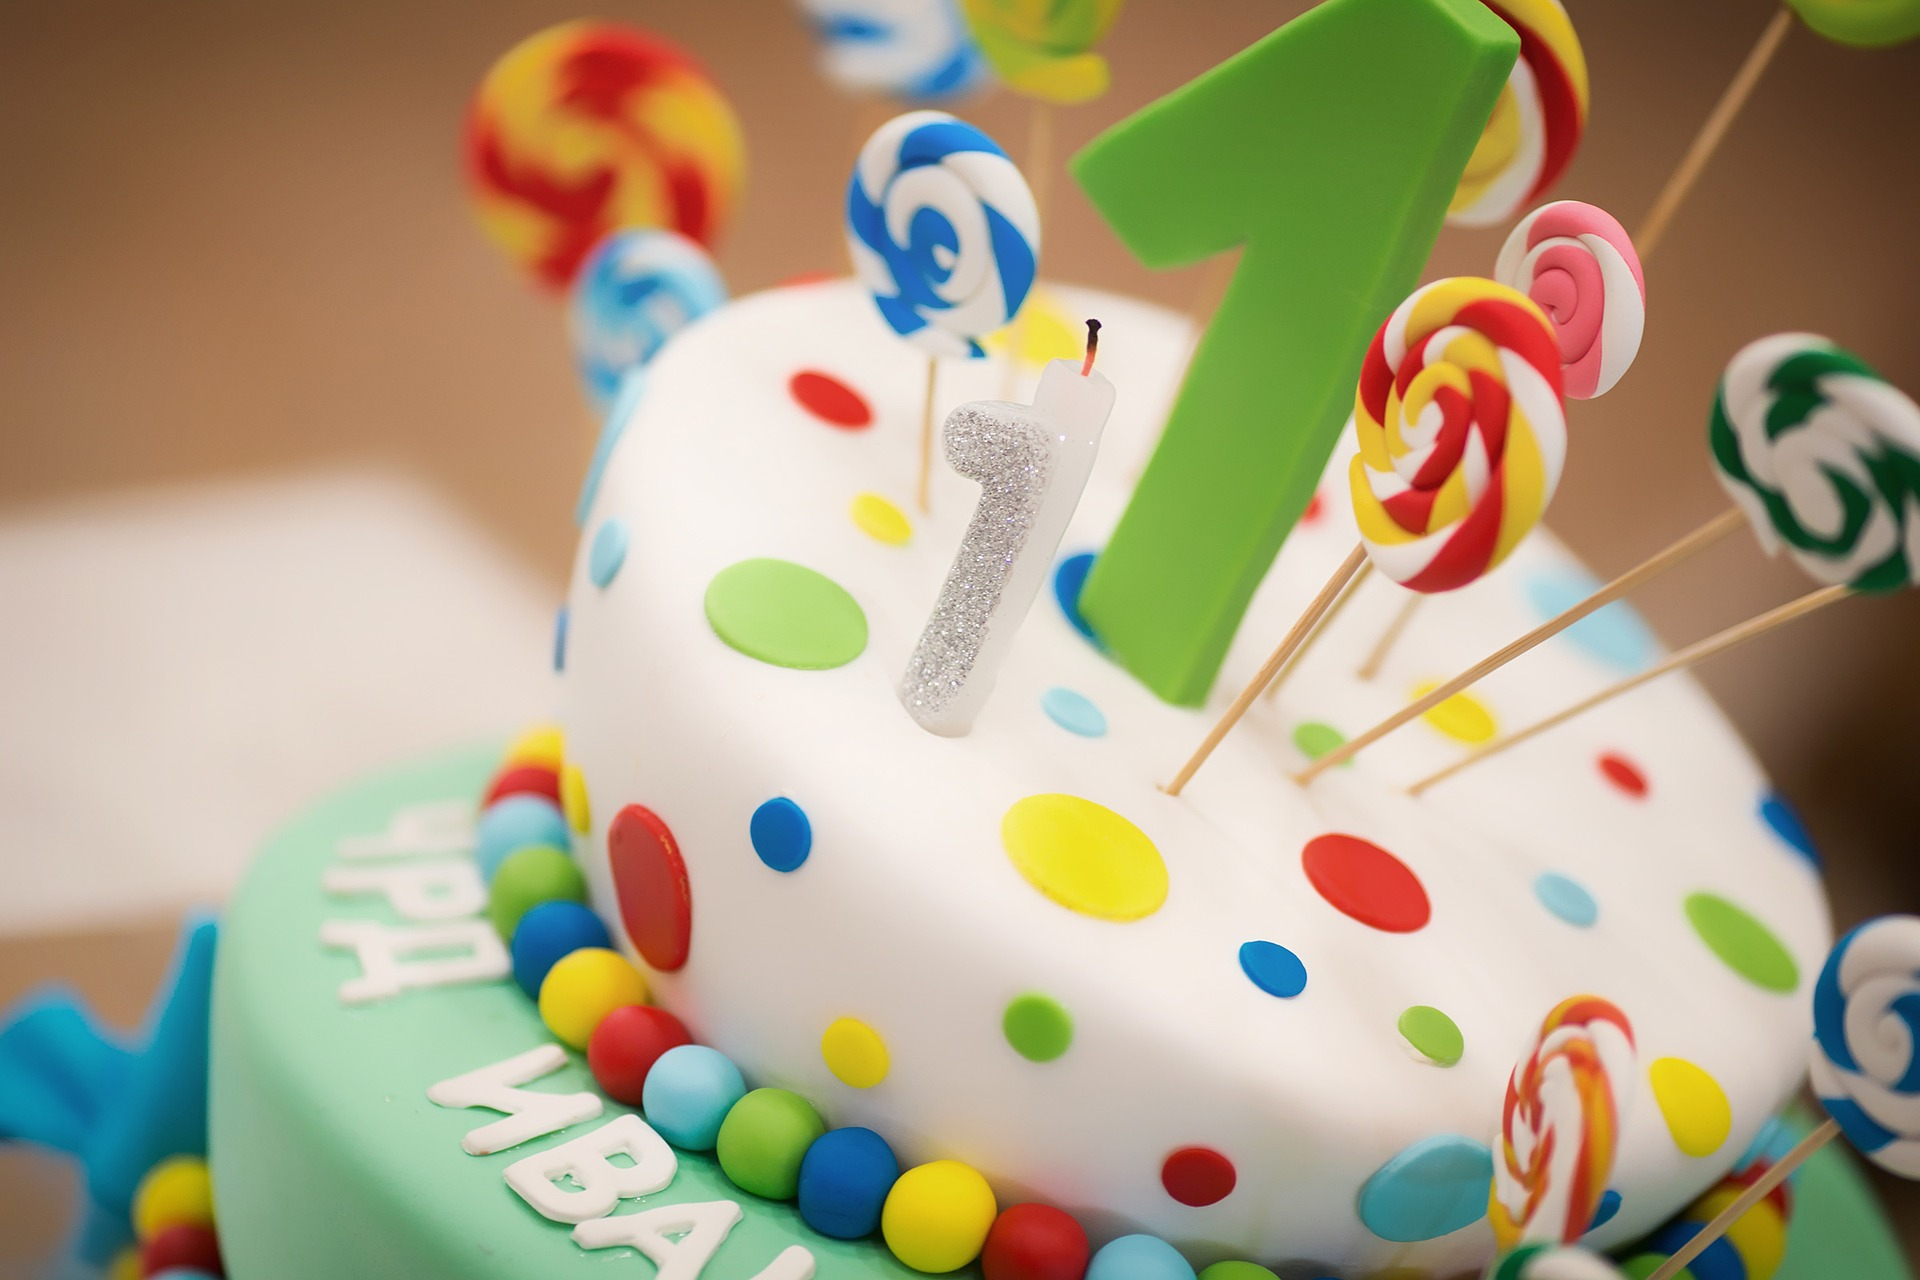 Hassle-free kiddies birthday party ideas